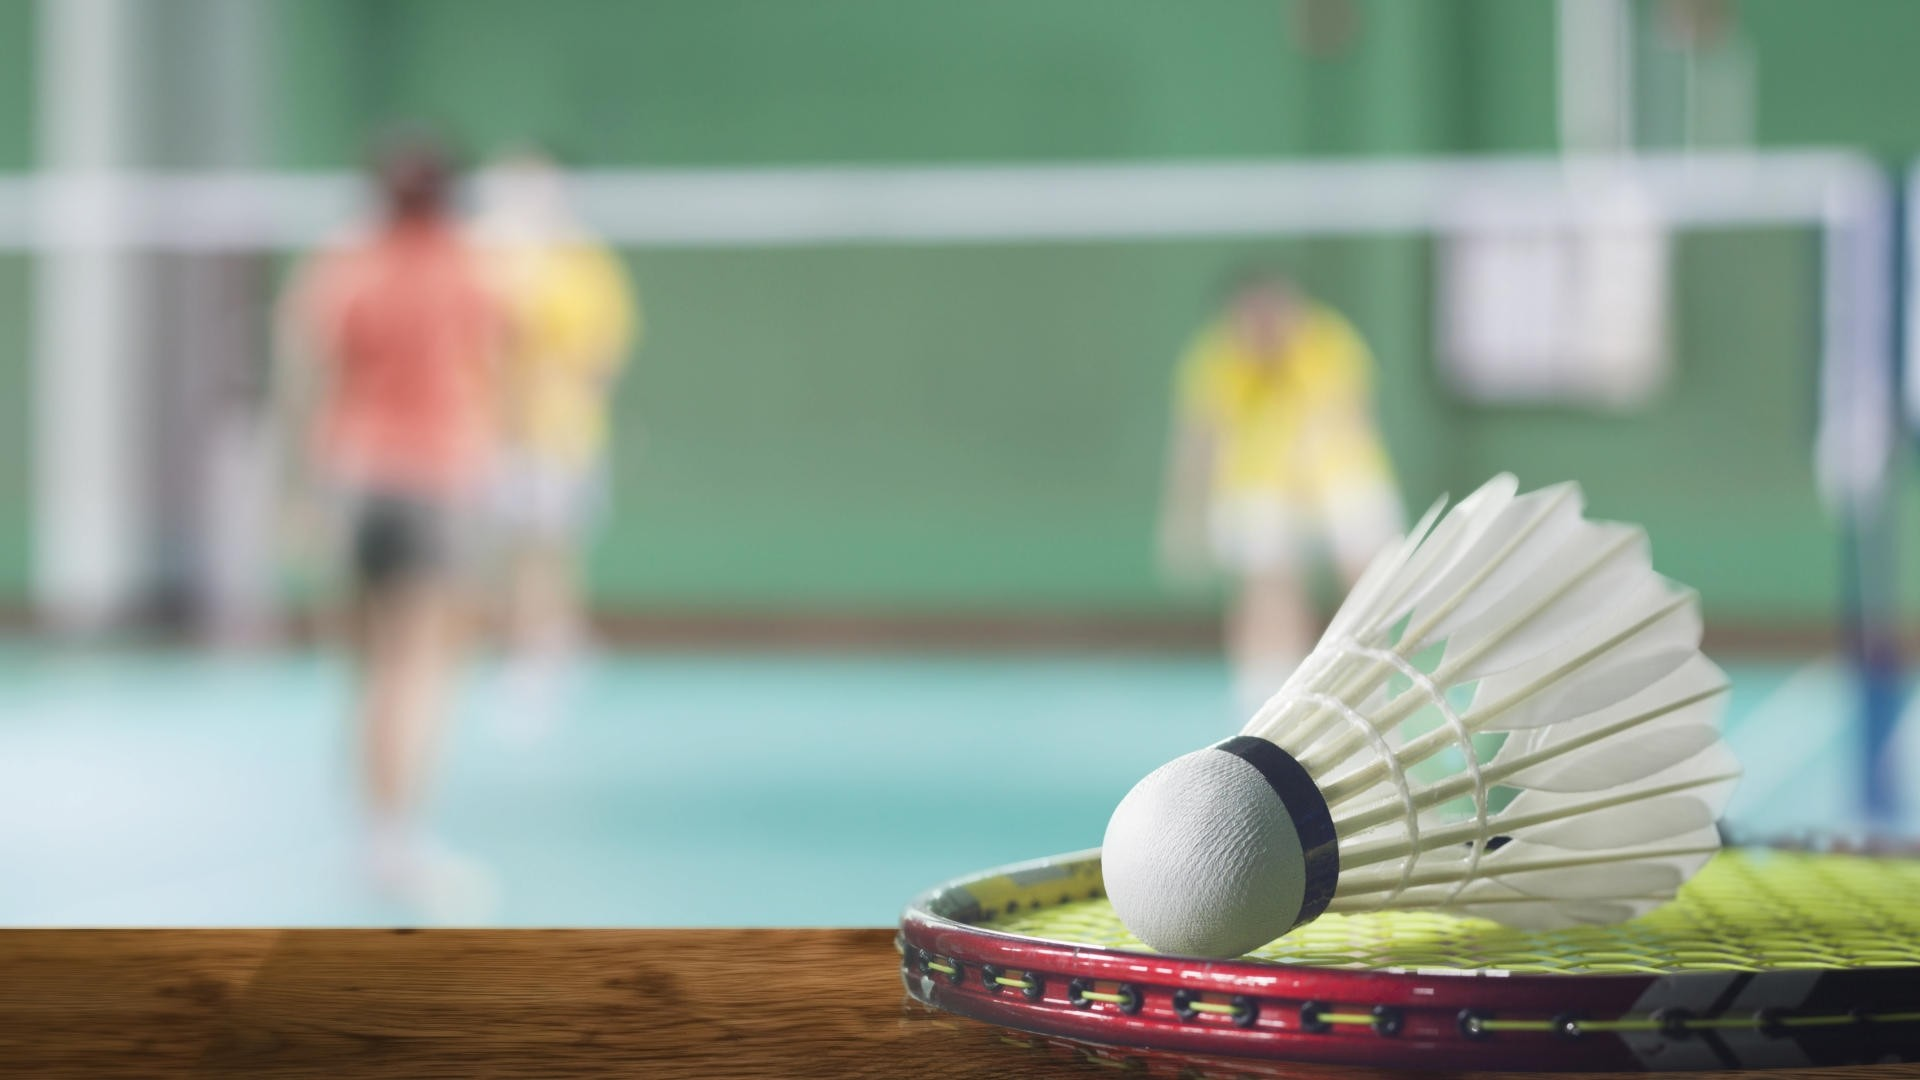 Badminton Desktop Wallpaper